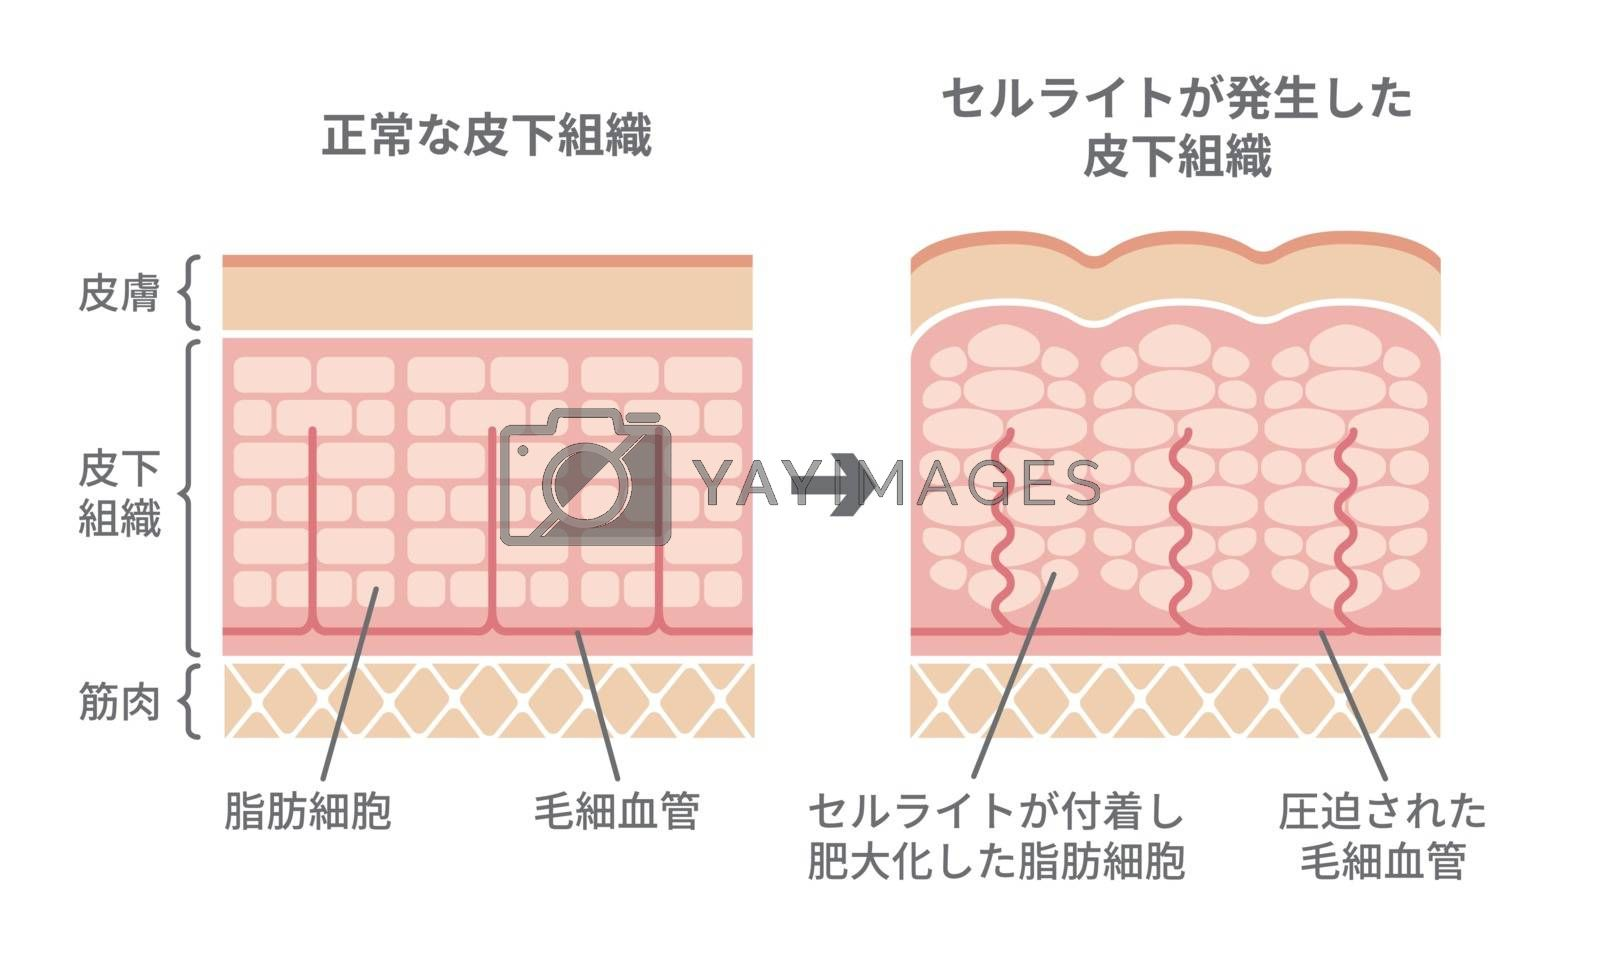 Royalty free image of Comparative illustration of normal skin and cellulite's skin by barks